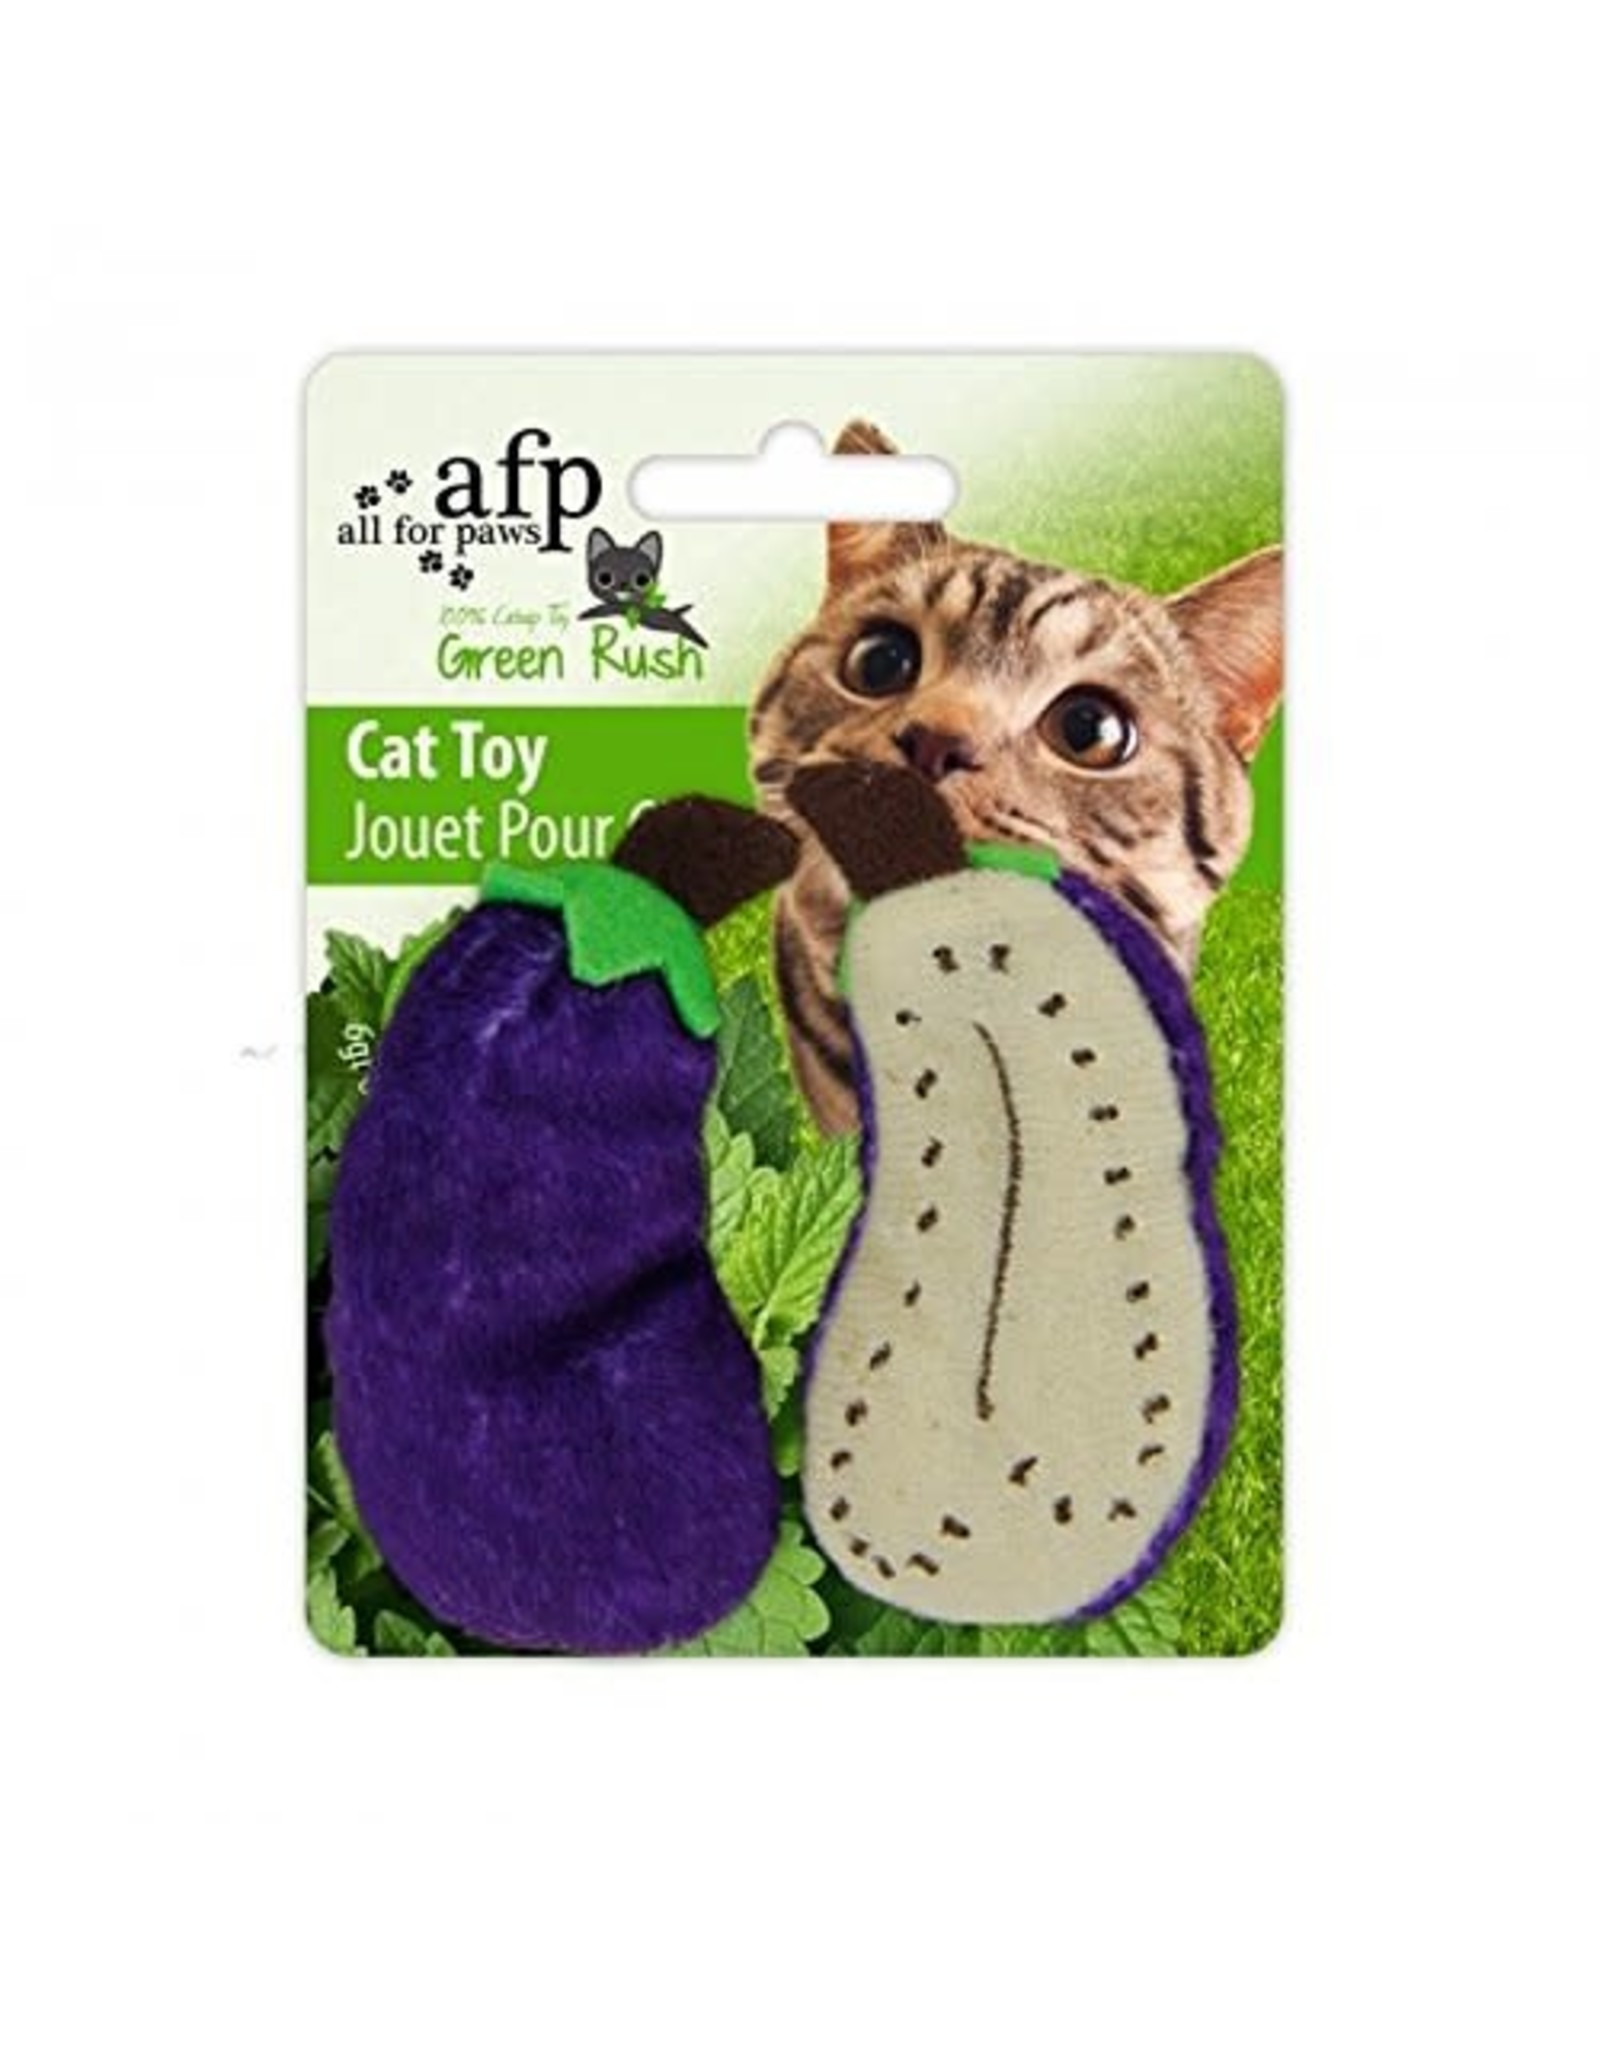 All for Paws Green Rush All Natural Eggplant/Carrot/Peas 2 Pack Assorted